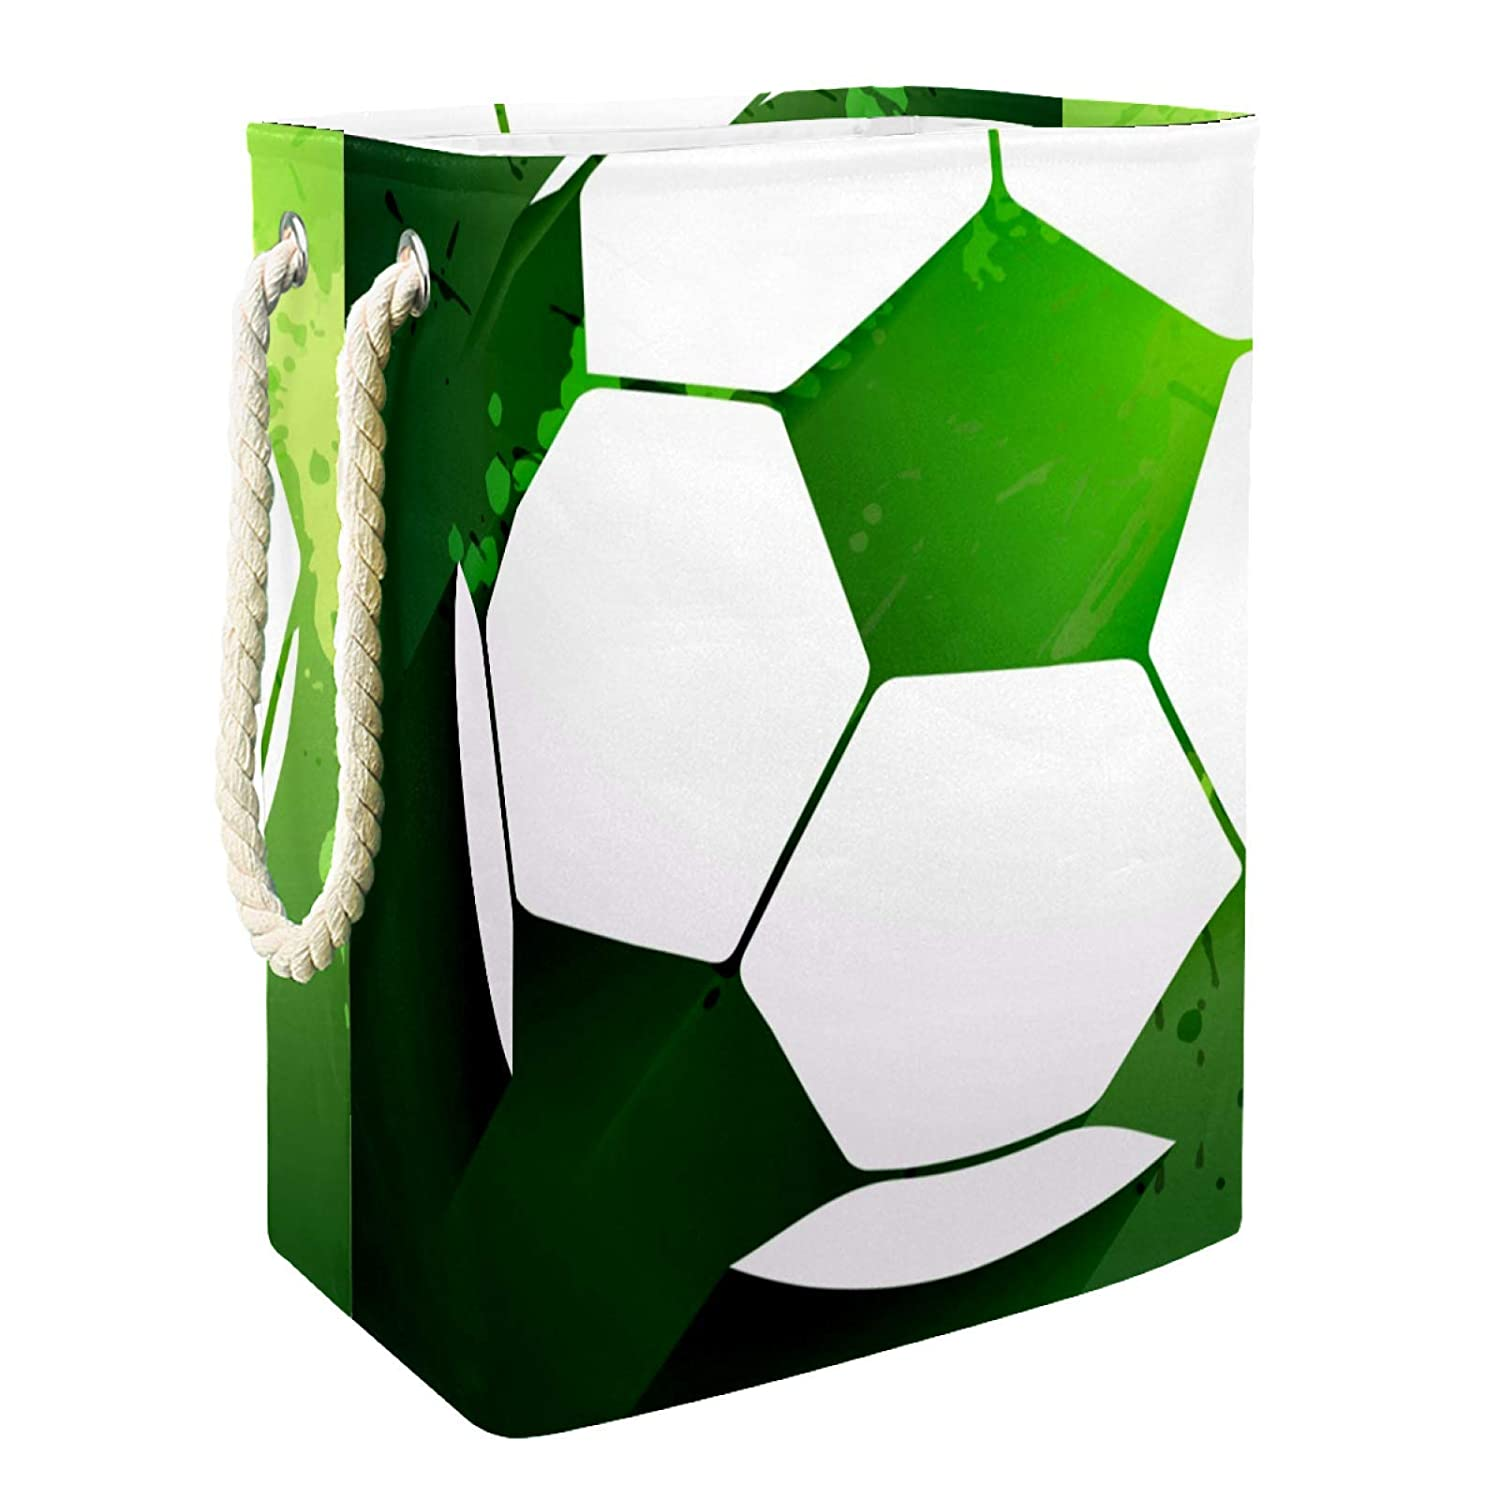 Laundry 70% OFF Outlet Hamper Soccer Storage Self-Standing Col Memphis Mall Box Waterproof